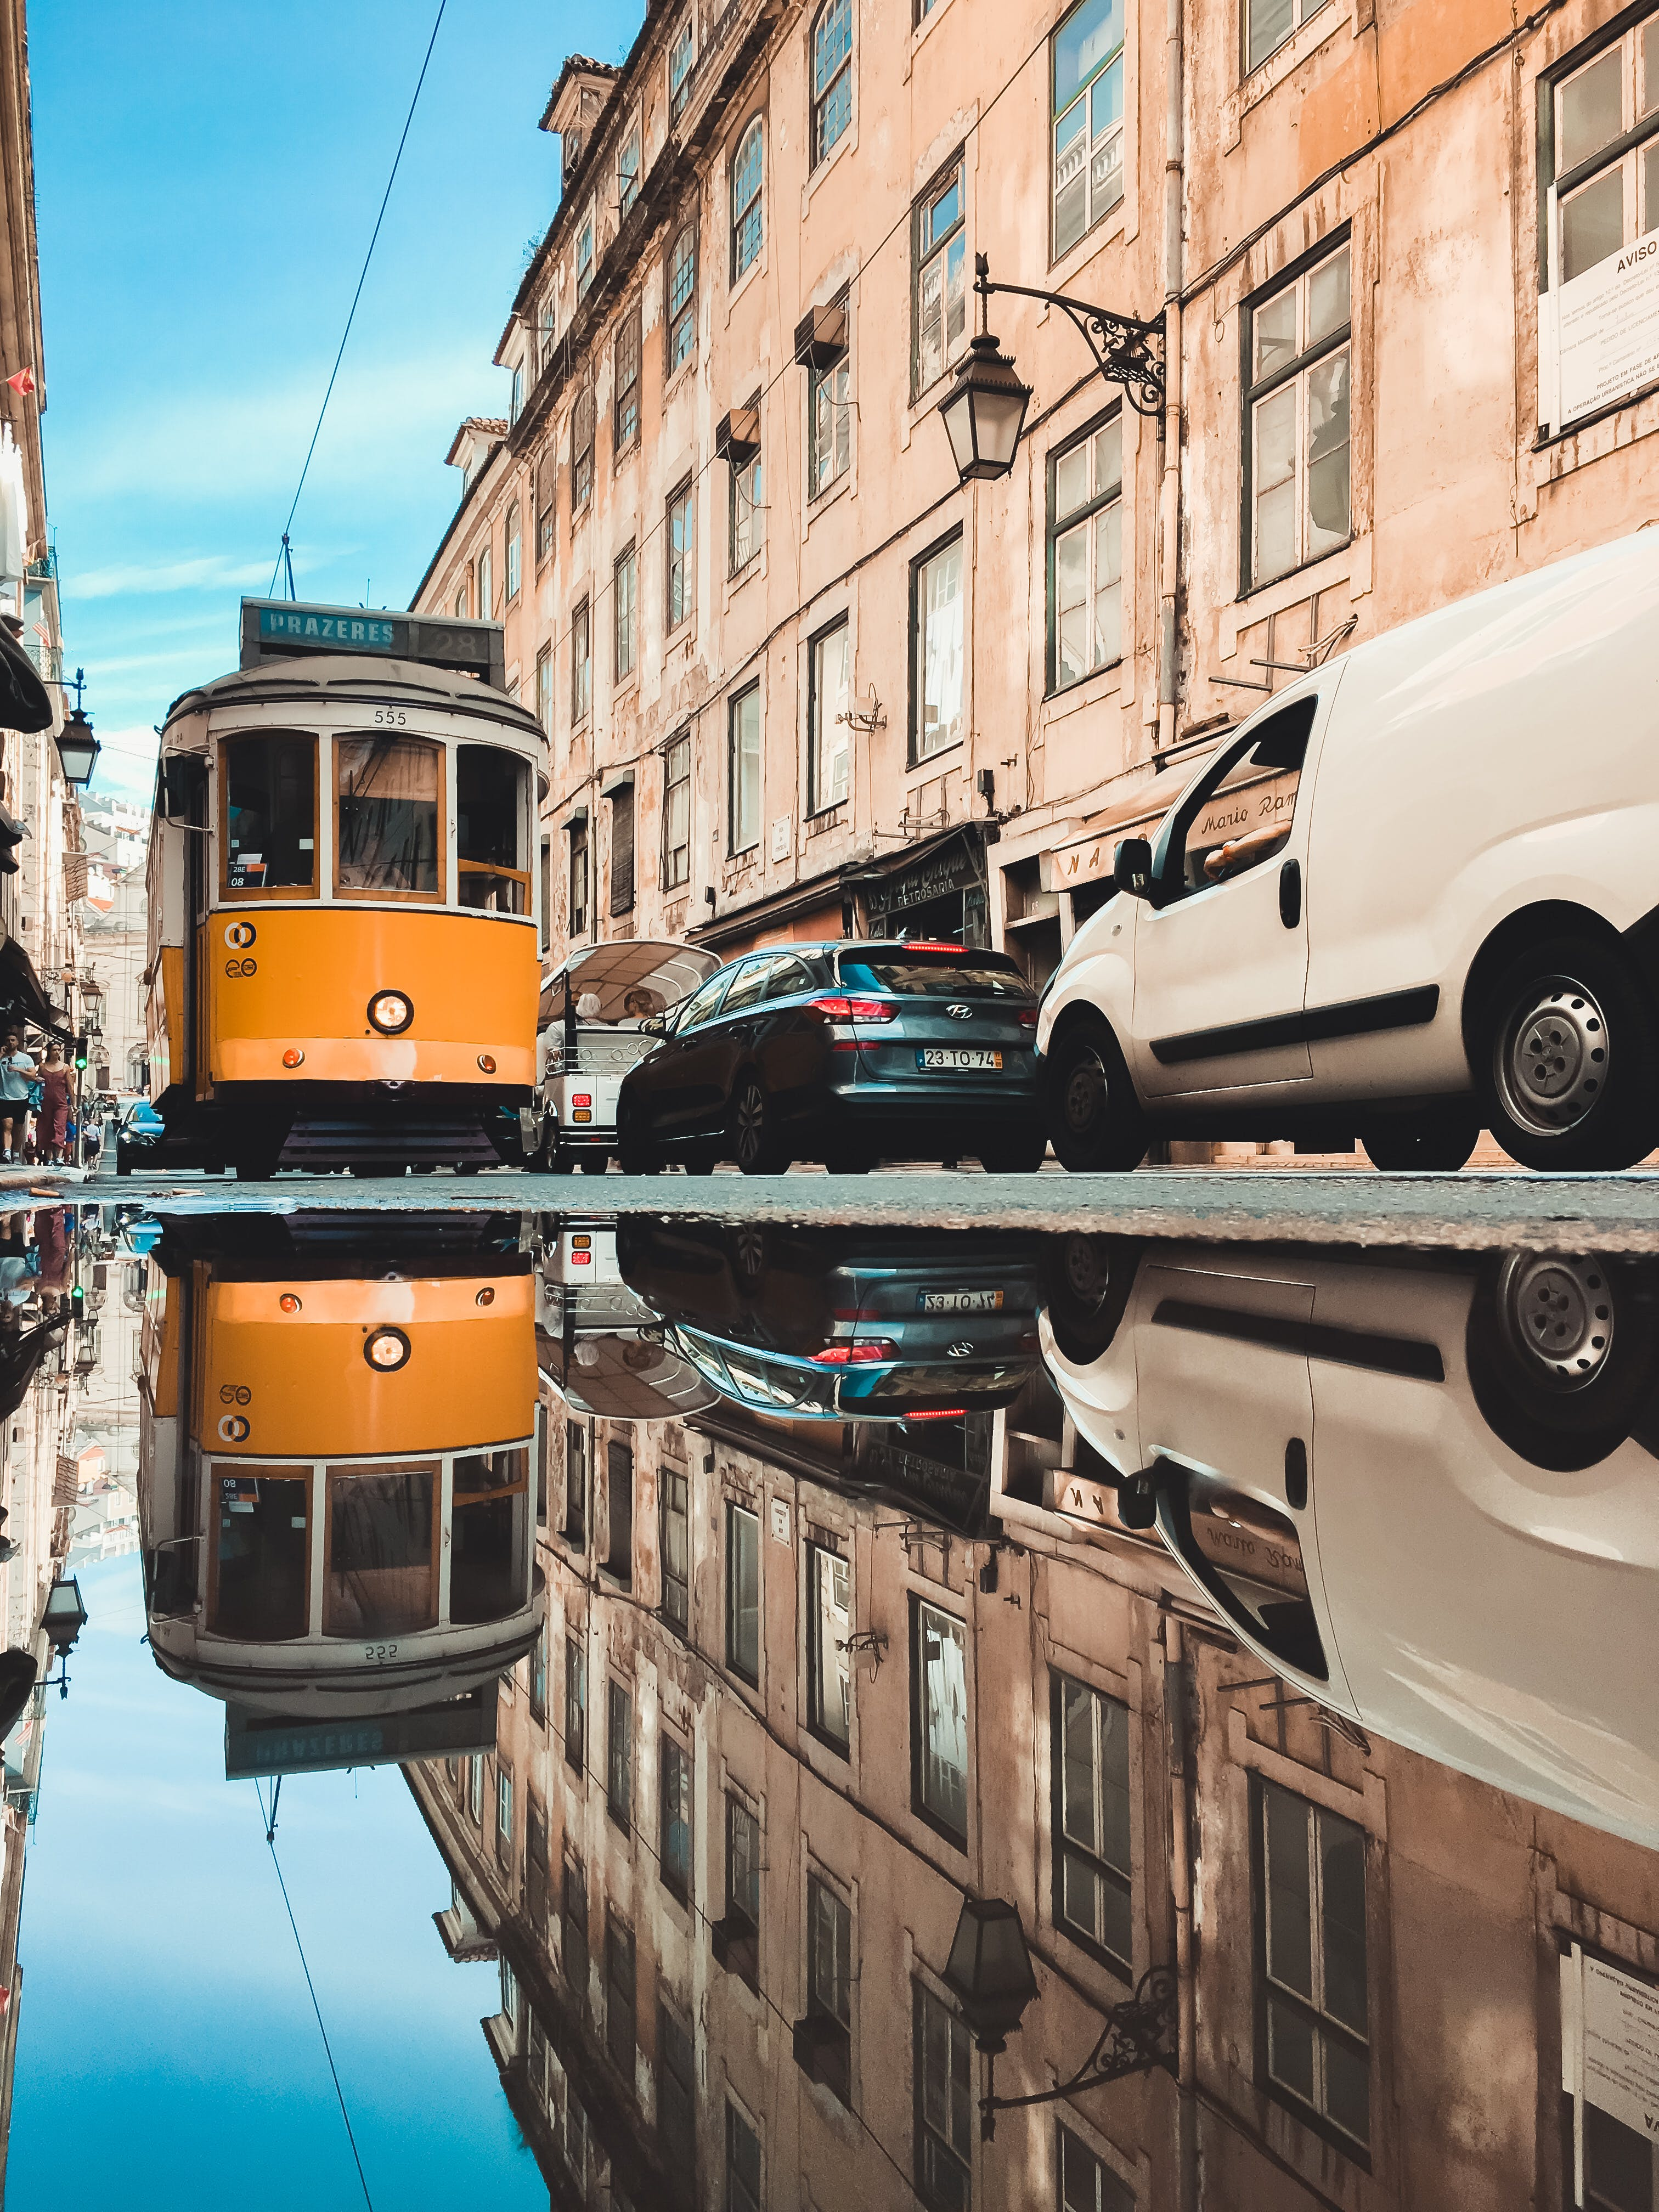 Reflection of Tram in Puddle